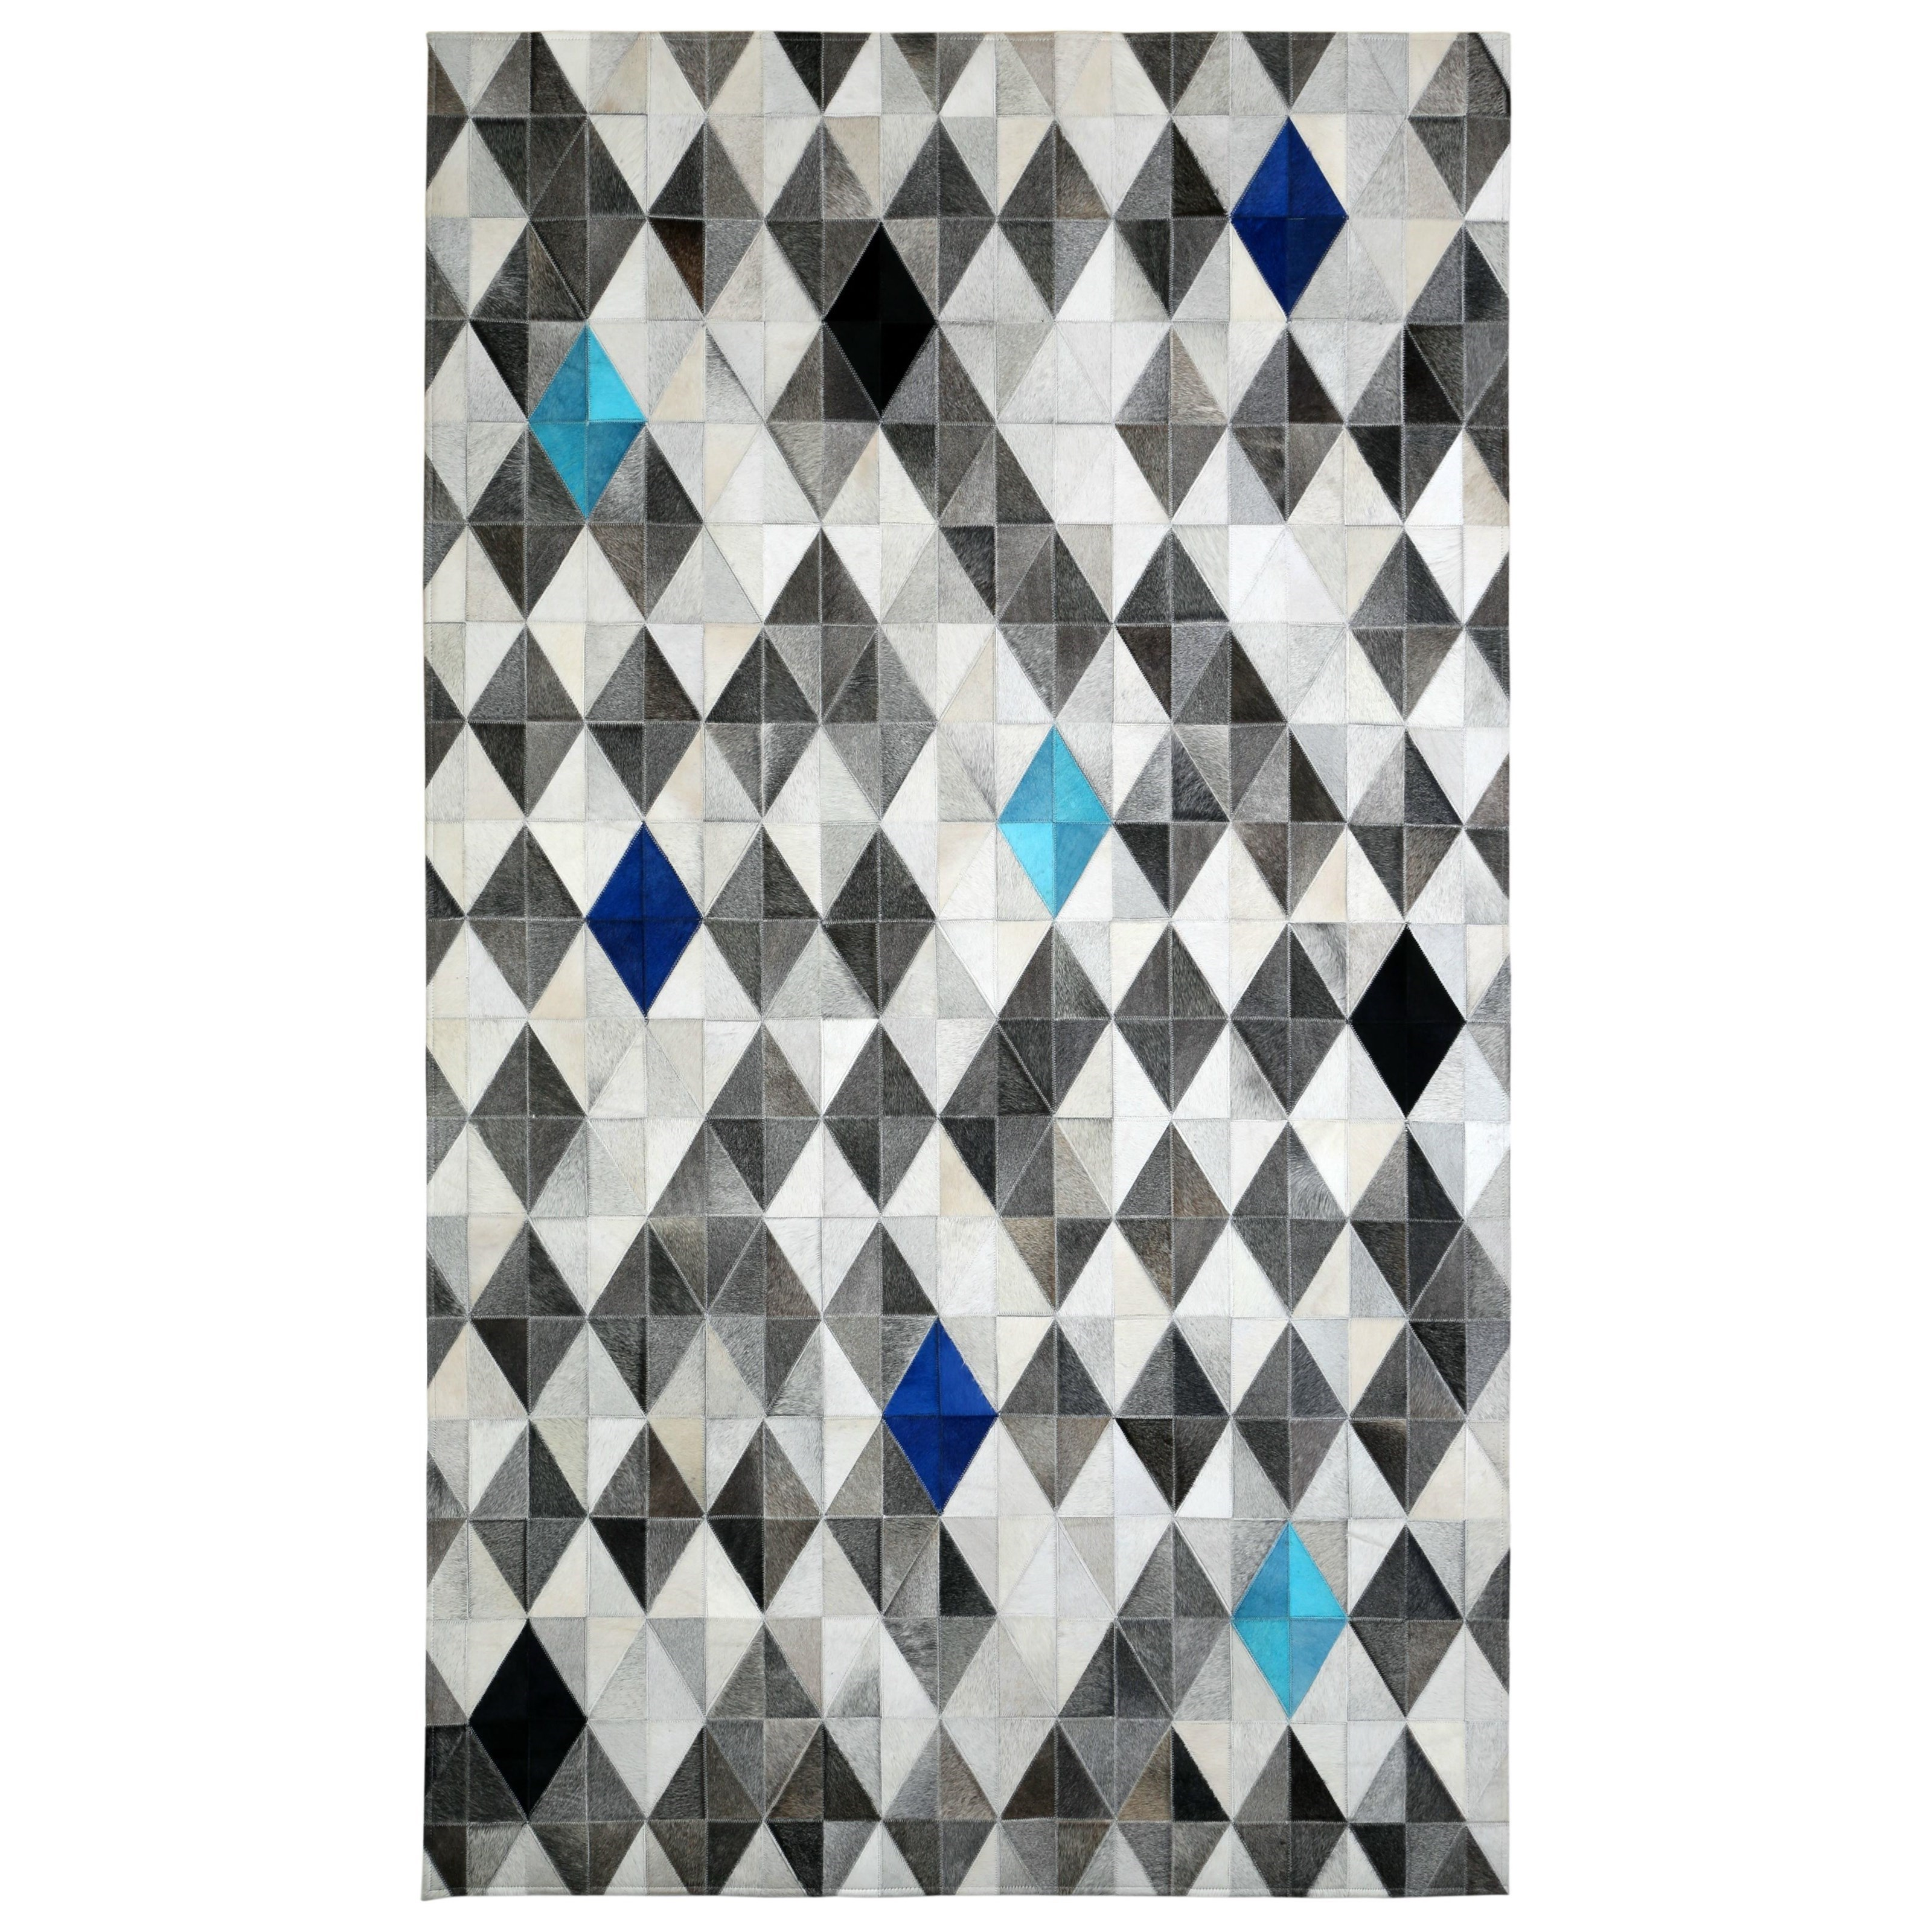 Butler Specialty Company Hair On Hide Rug 5' X 8' Area Rug - Item Number: 9602351